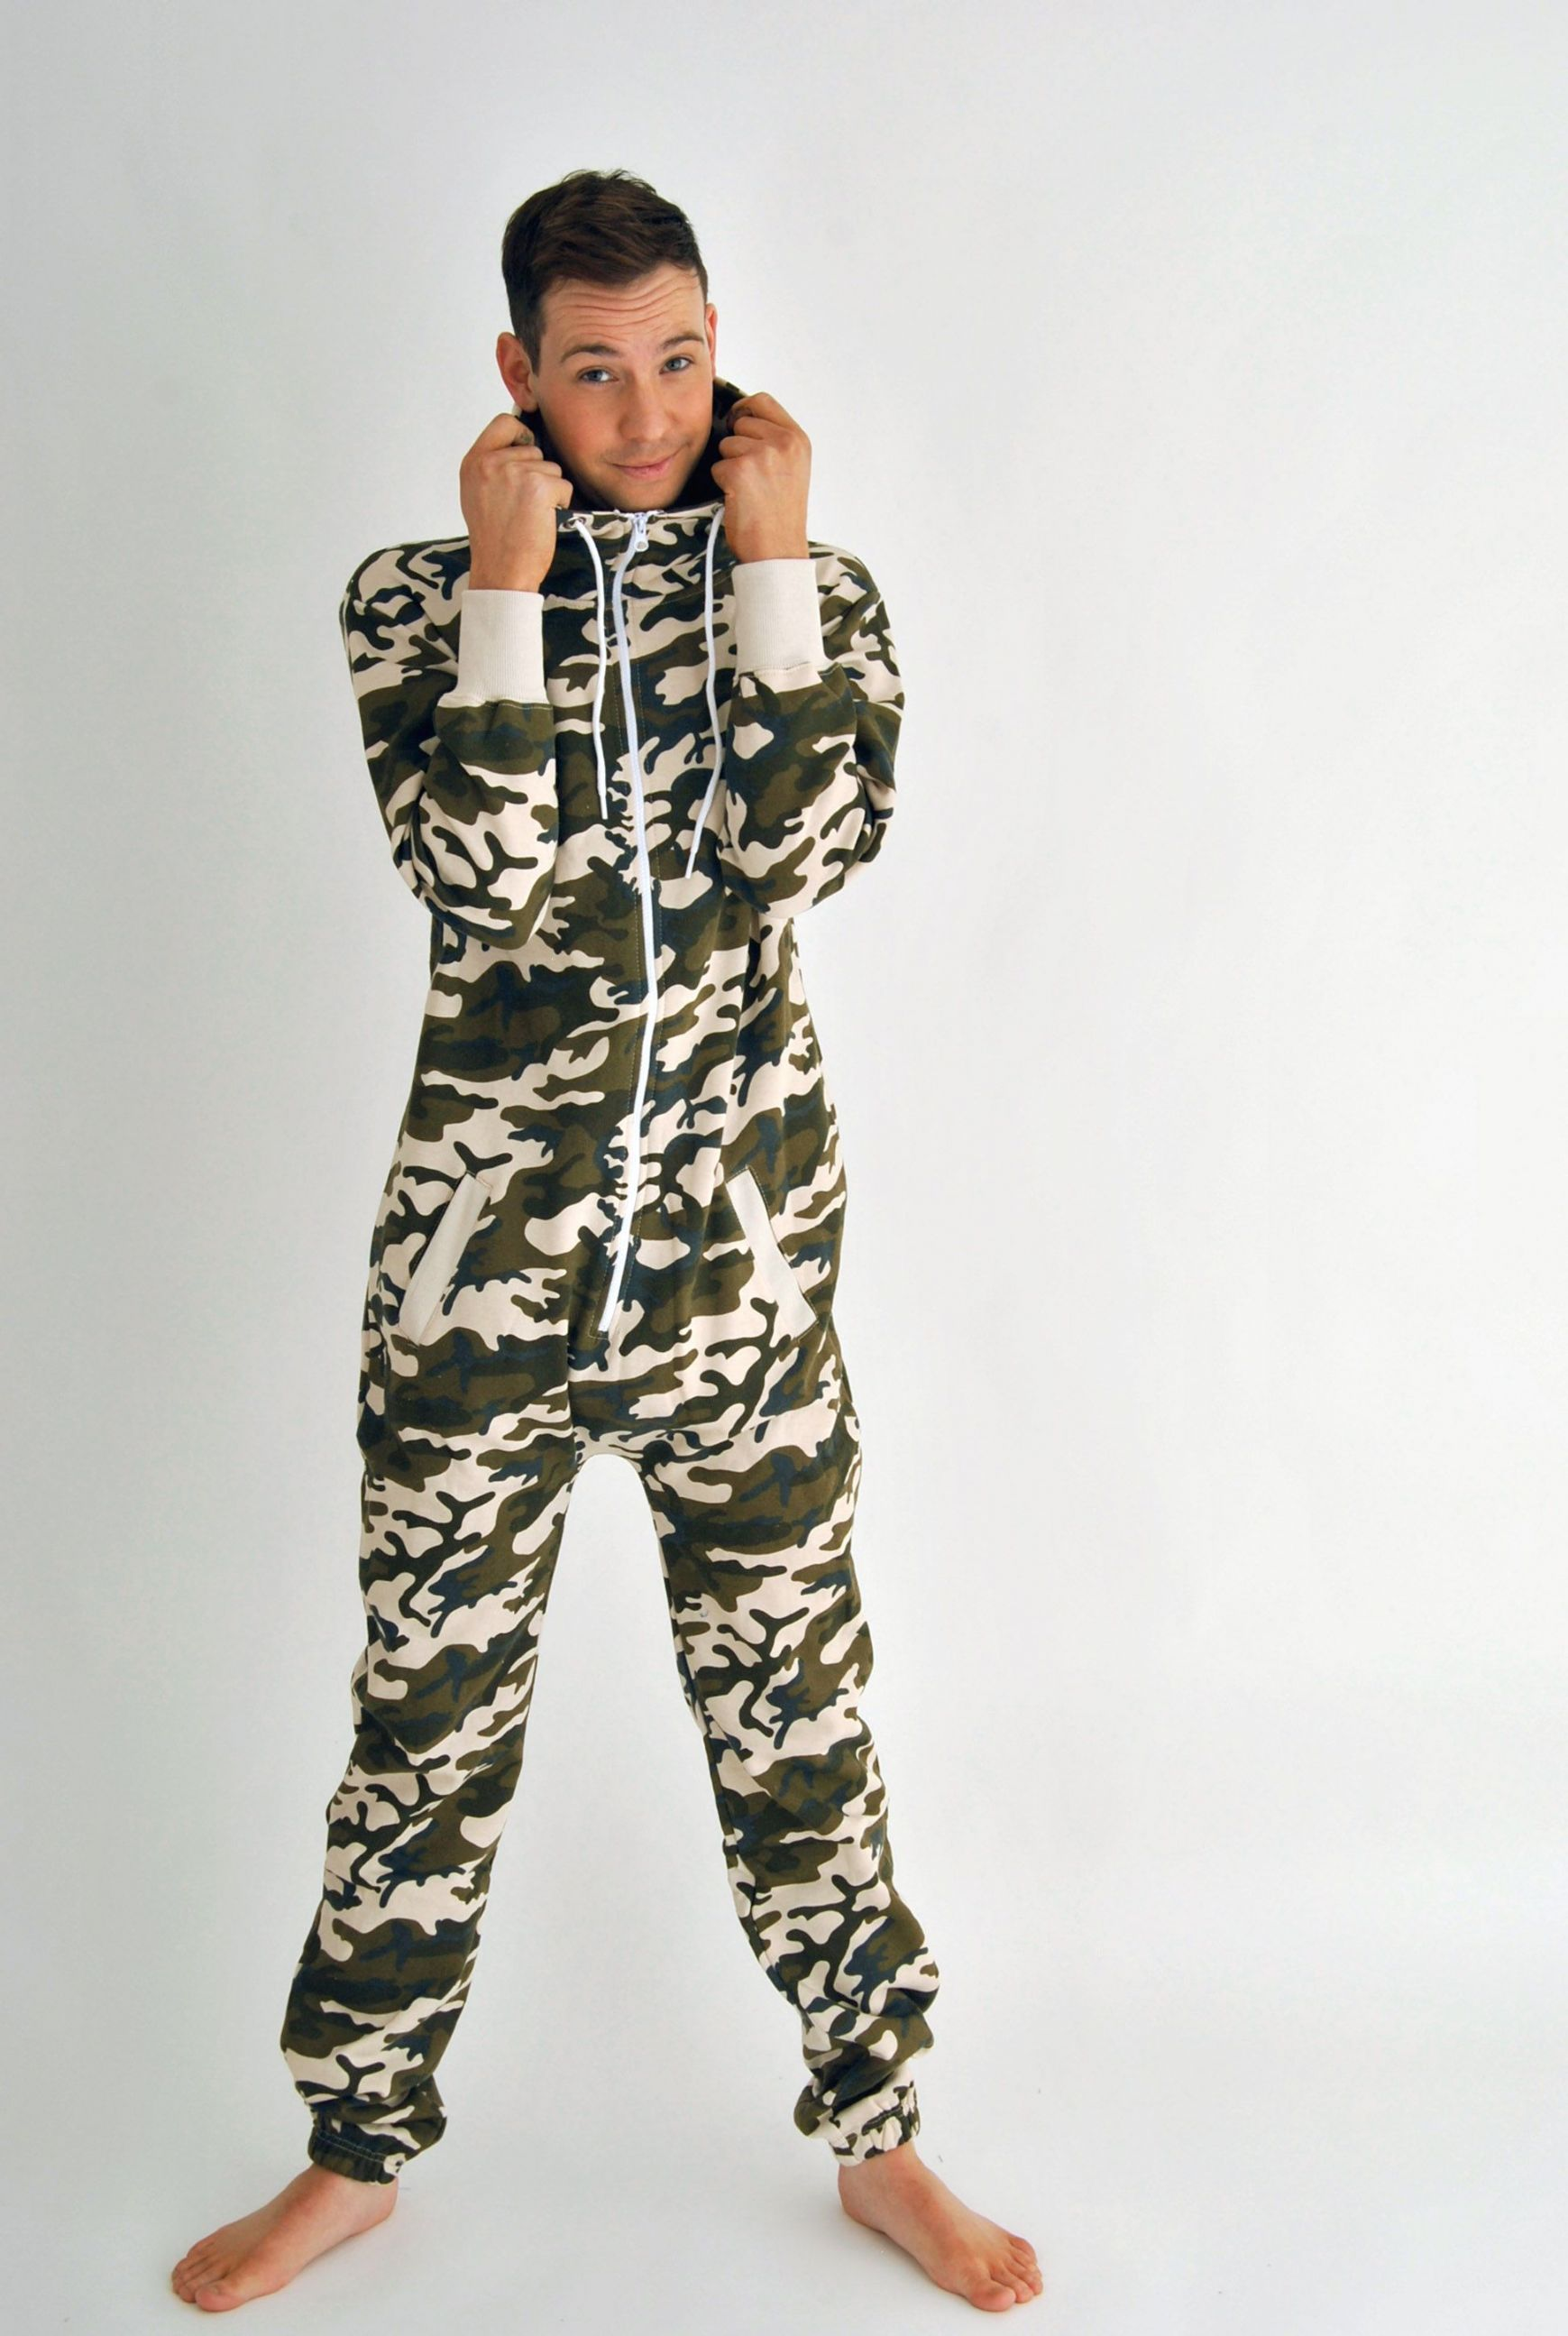 Mens Camouflage Printed Hooded Onesie